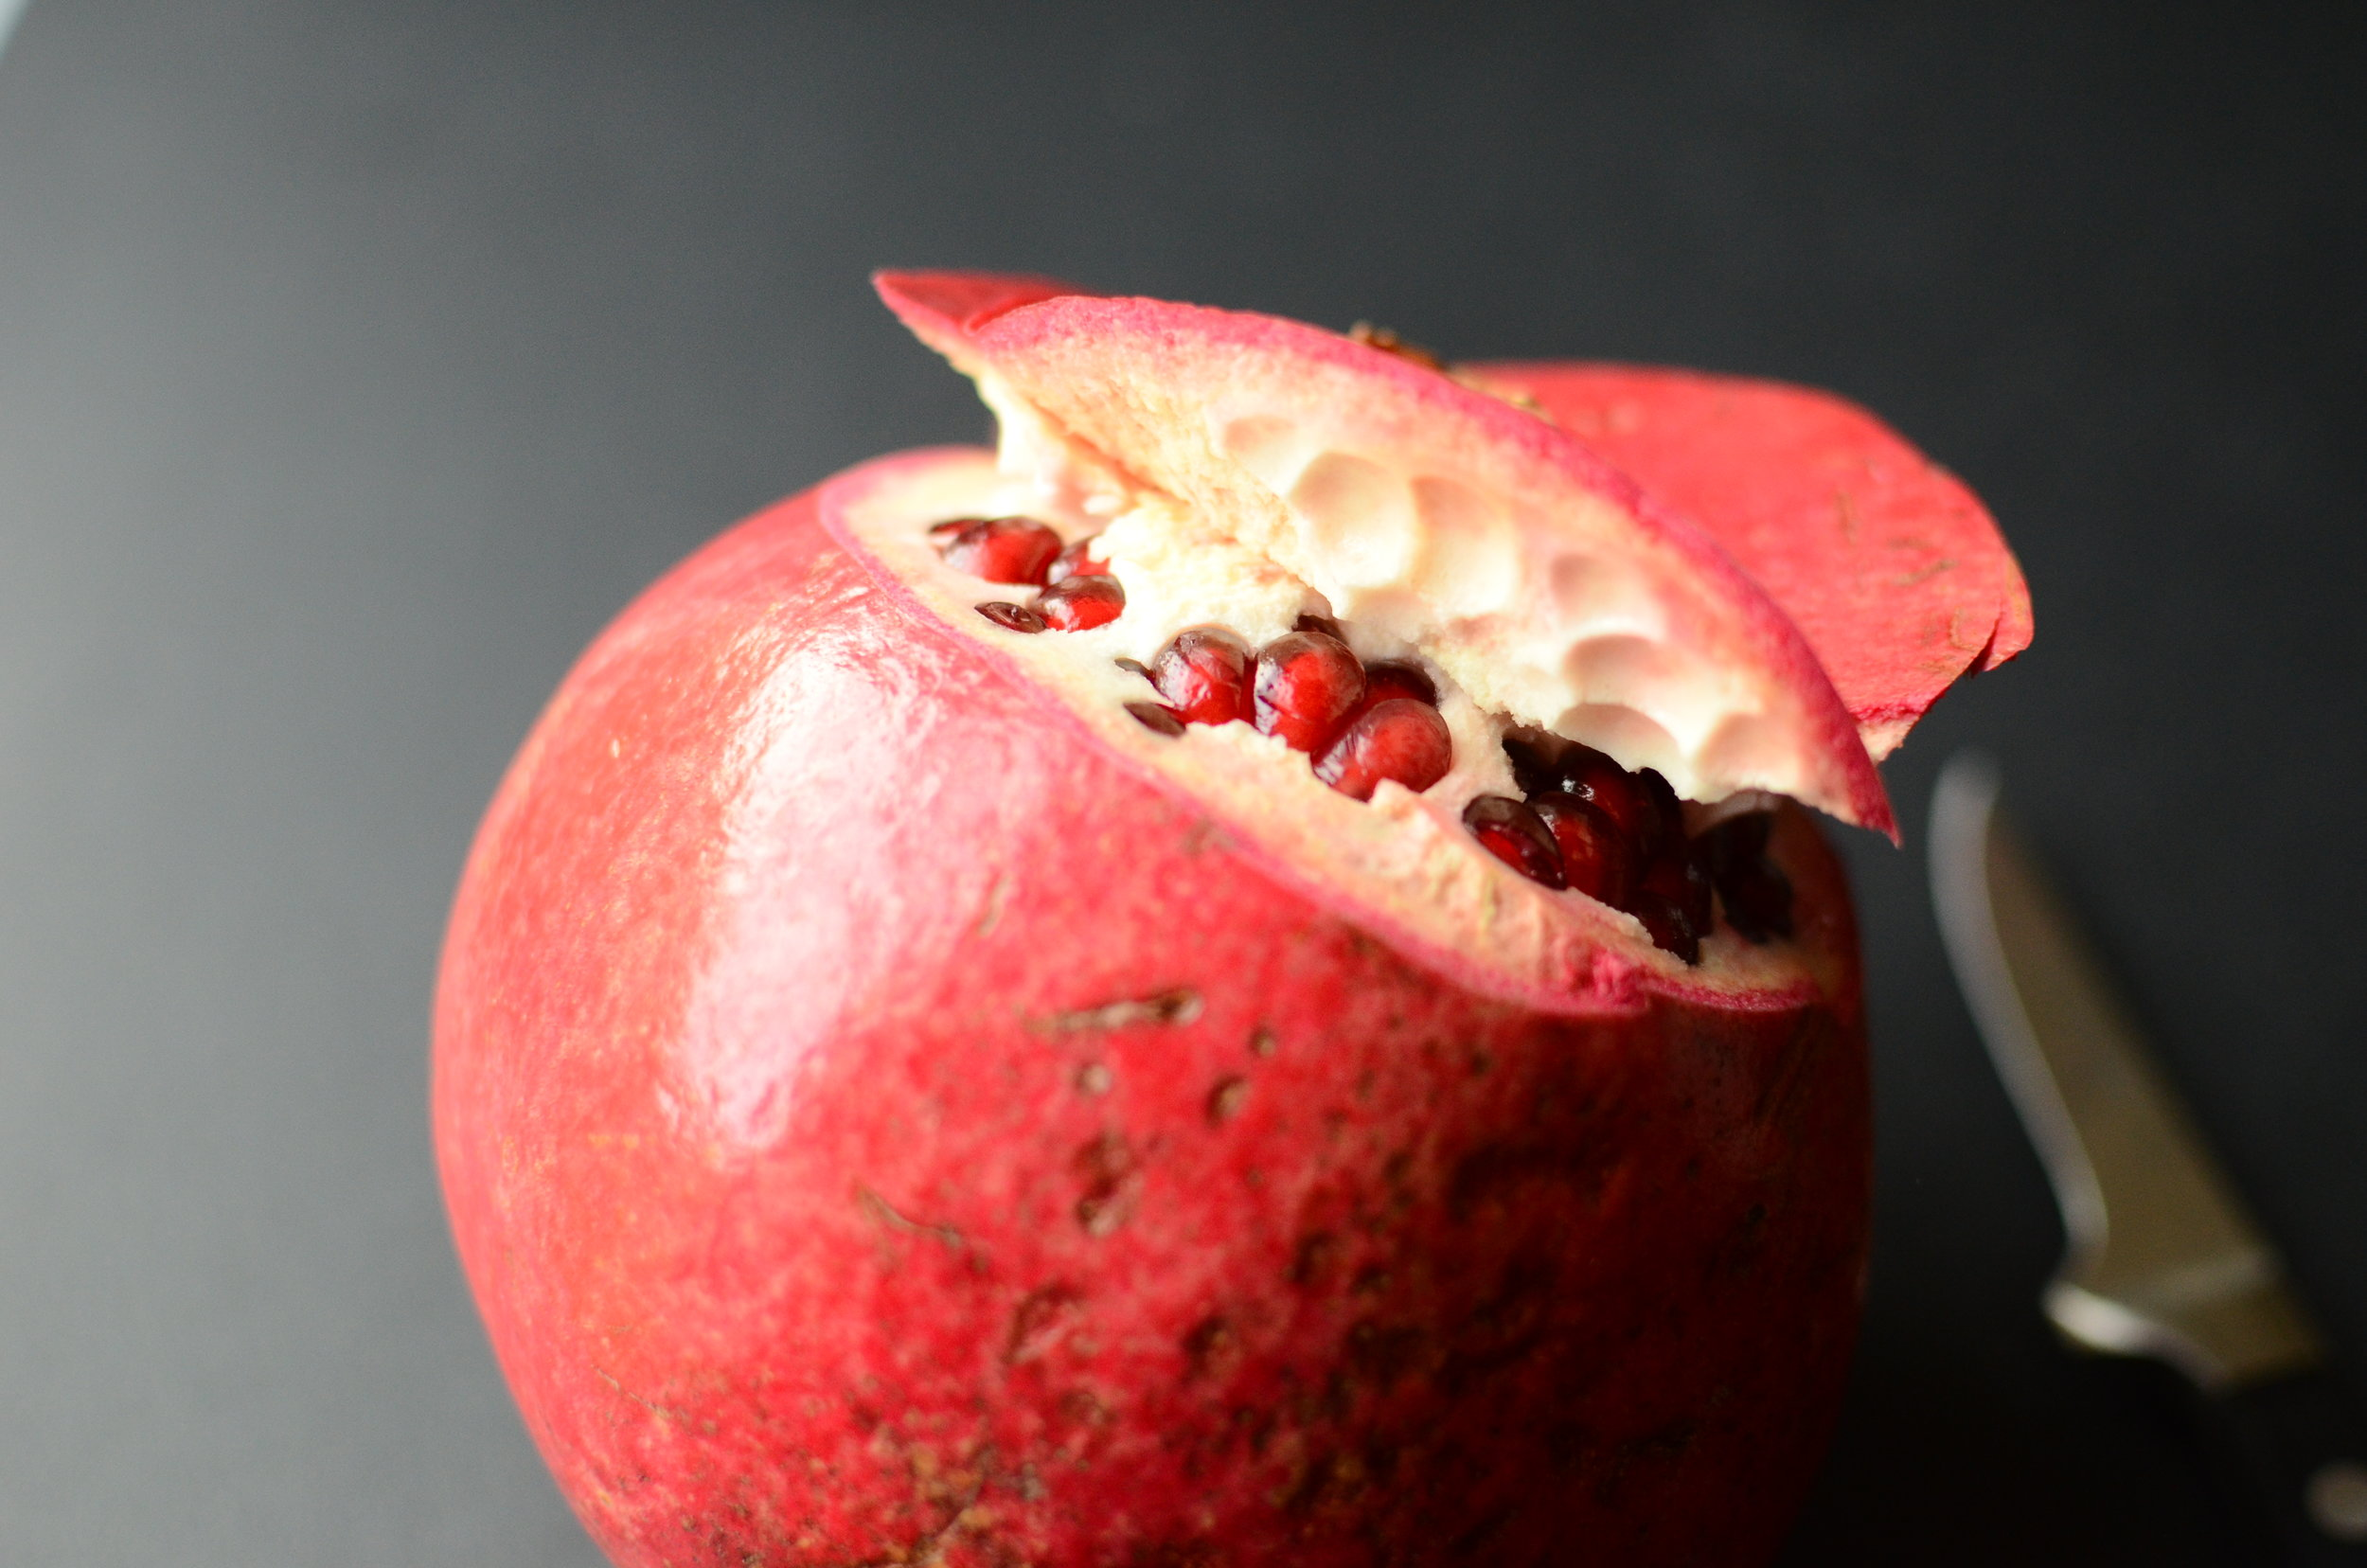 official way to open a pomegranate. opening a pomegranate.